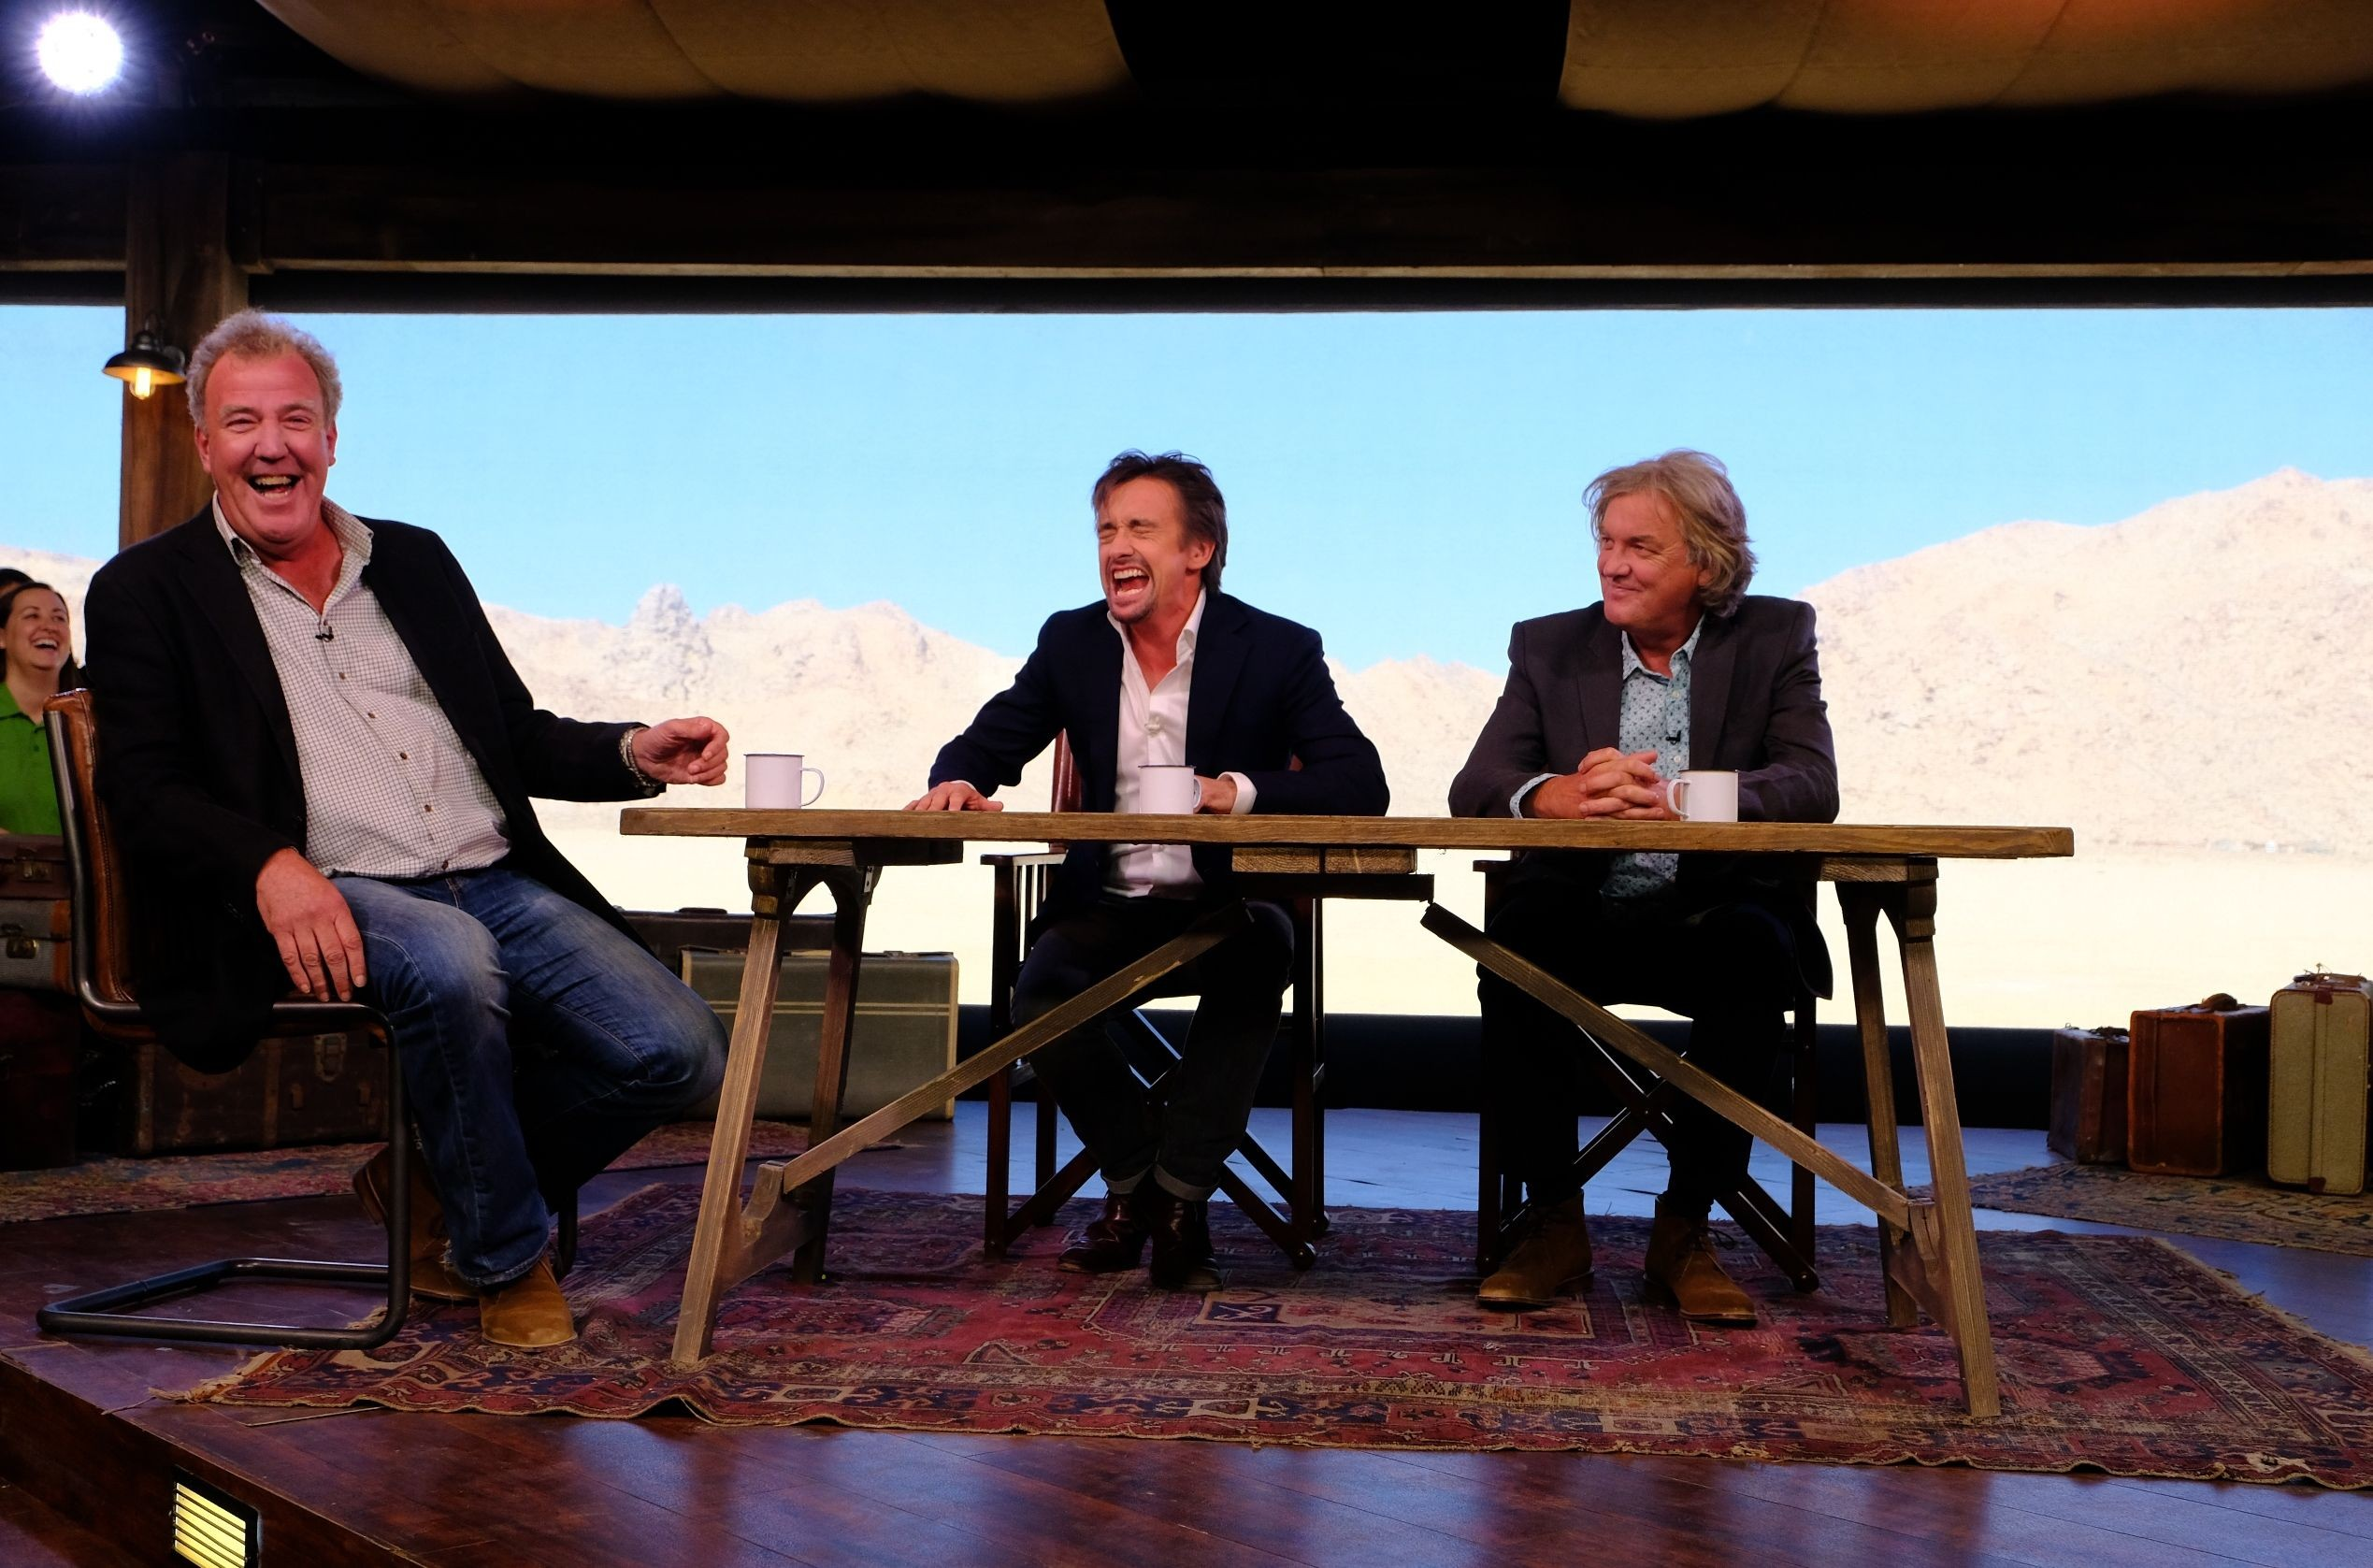 Jeremy Clarkson, Richard Hammond and James May in The Grand Tour studio tent (Amazon, JG)